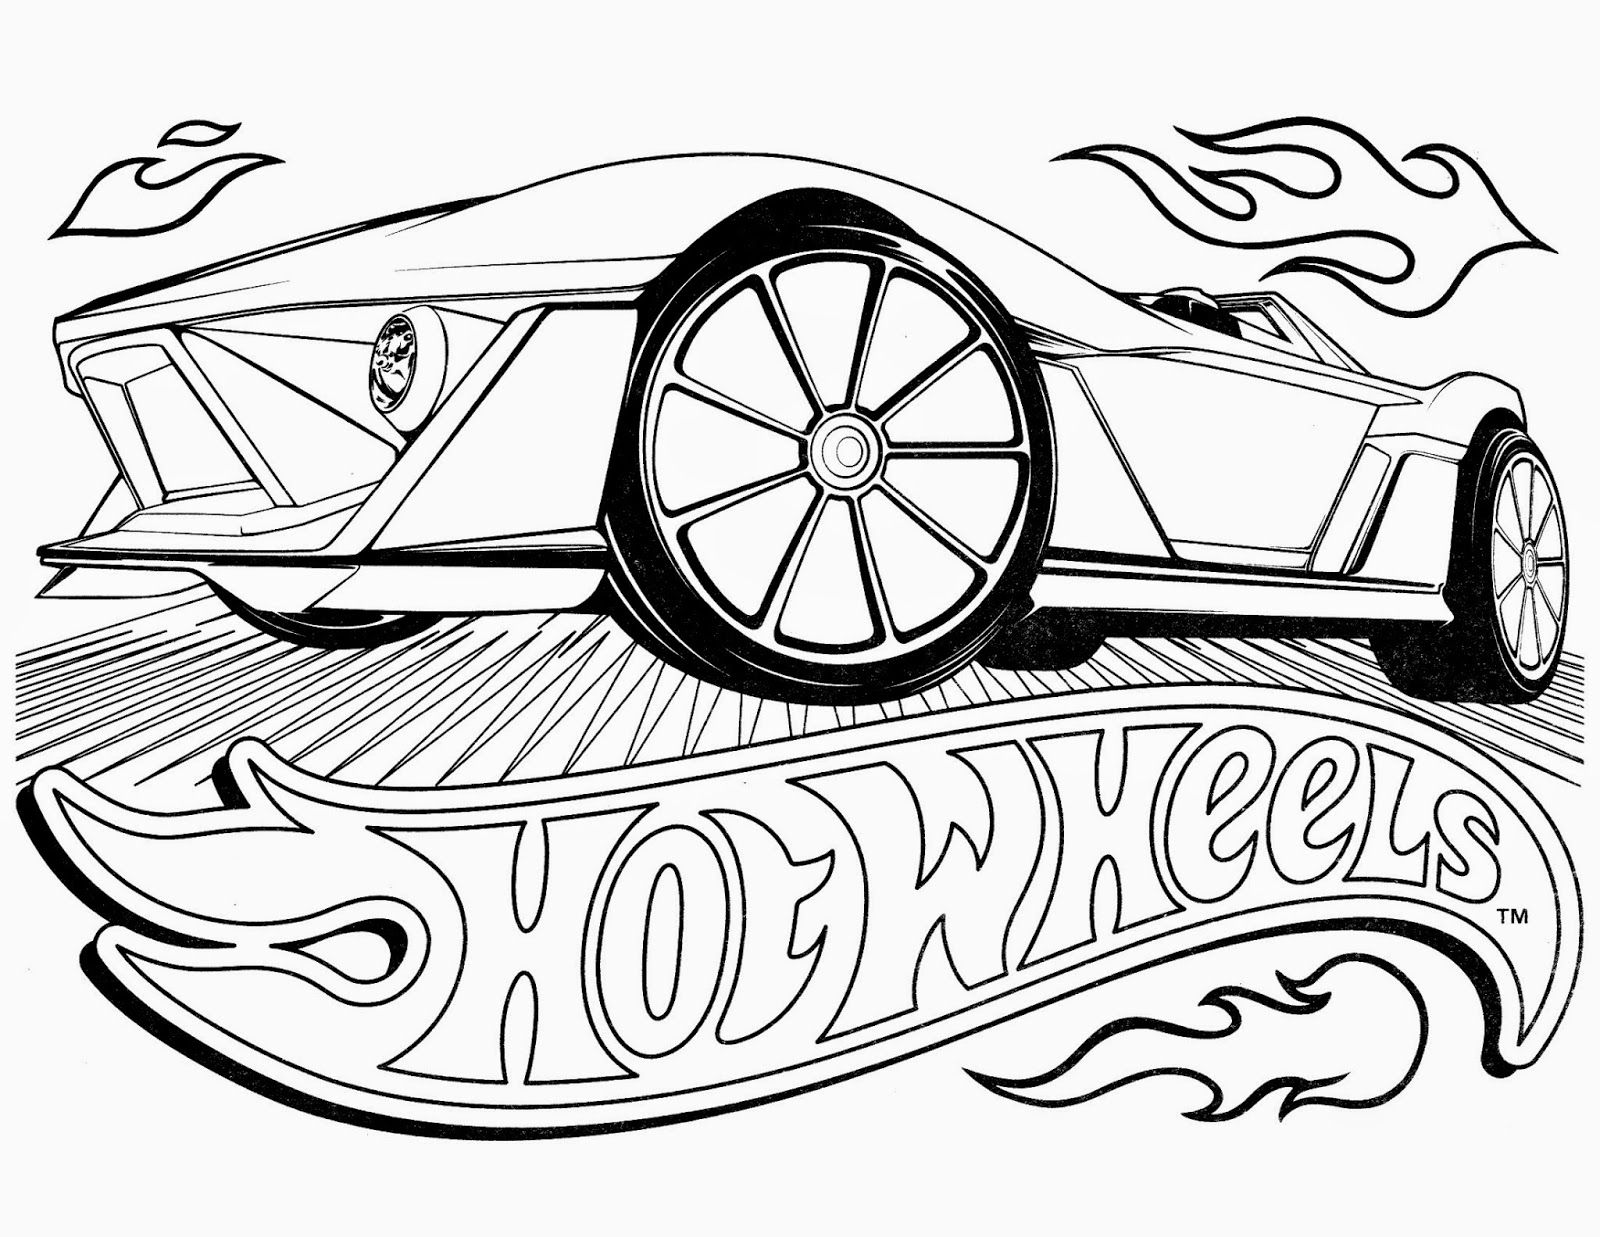 Hotwheels Coloring Pages Hot Wheels Printable Coloring Pages ...